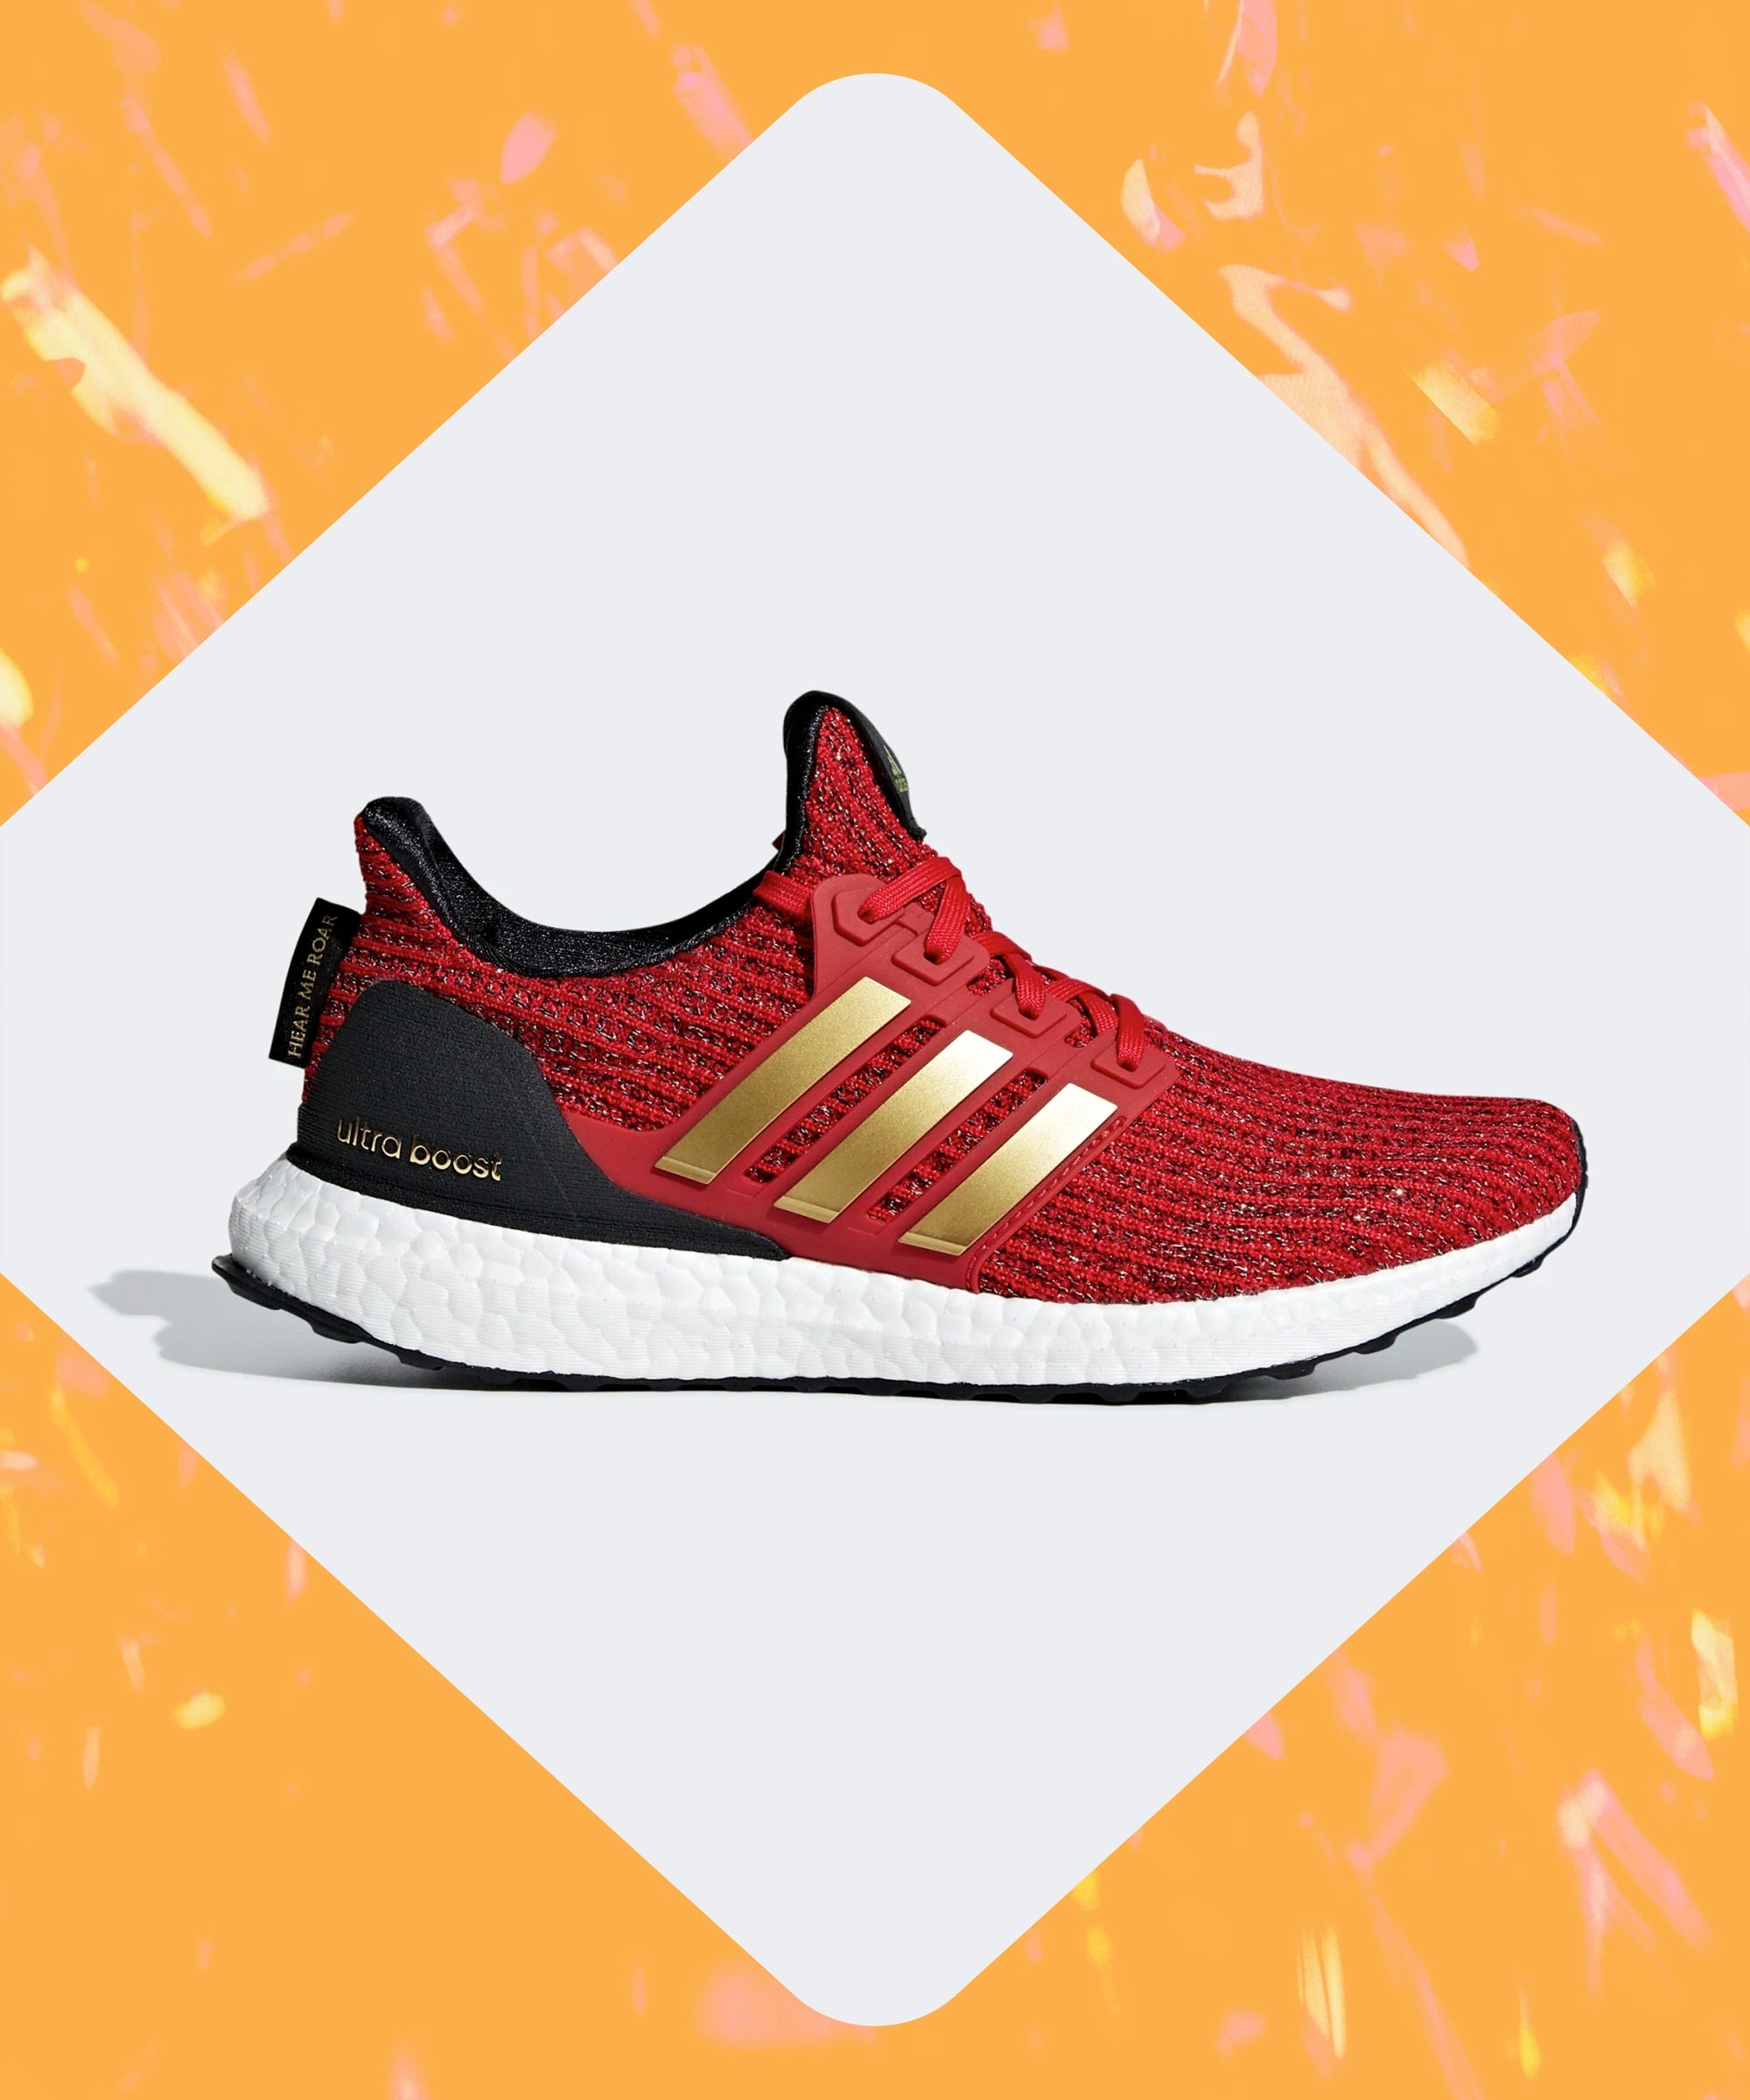 Adidas Just Launched Running Shoes Inspired By